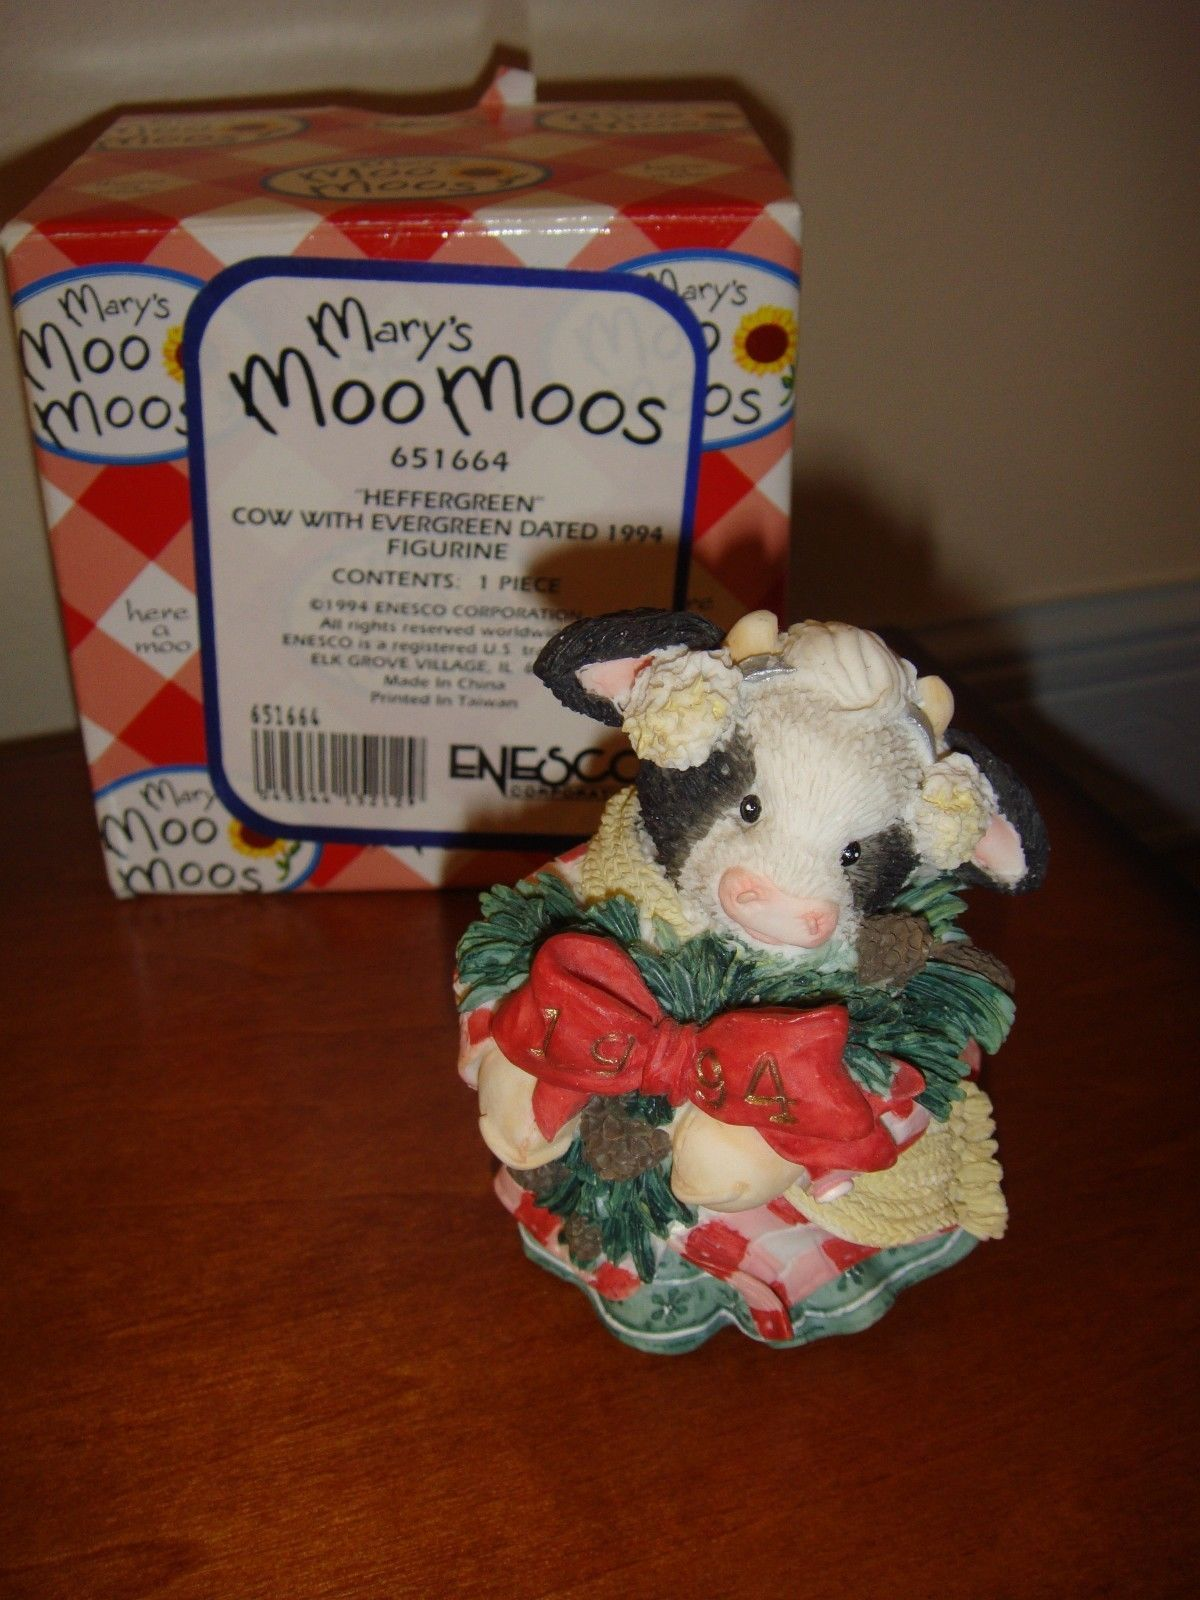 Mary's Moo Moos Heffergreen Cow With Evergreen Dated 1994 Figurine, 651664